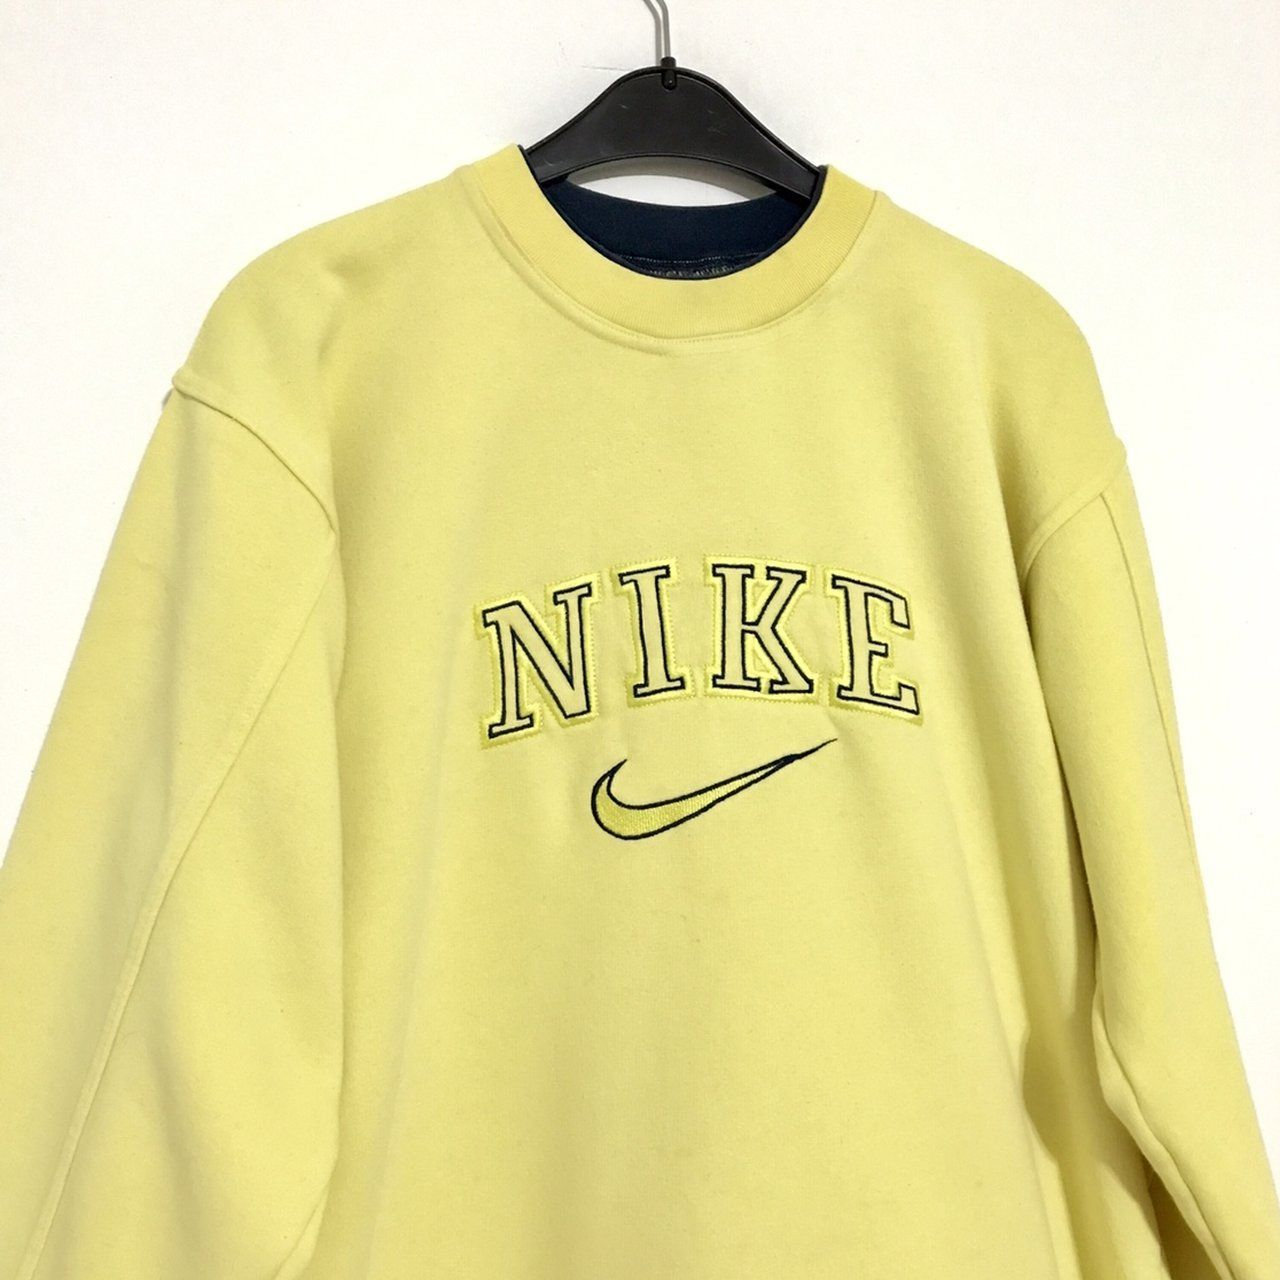 Vintage Nike Sweatshirt Size M Womens Good Condition To Depop Source By Ademir4v0 Nike Clot In 2020 Vintage Nike Sweatshirt Vintage Hoodies Vintage Sweatshirt